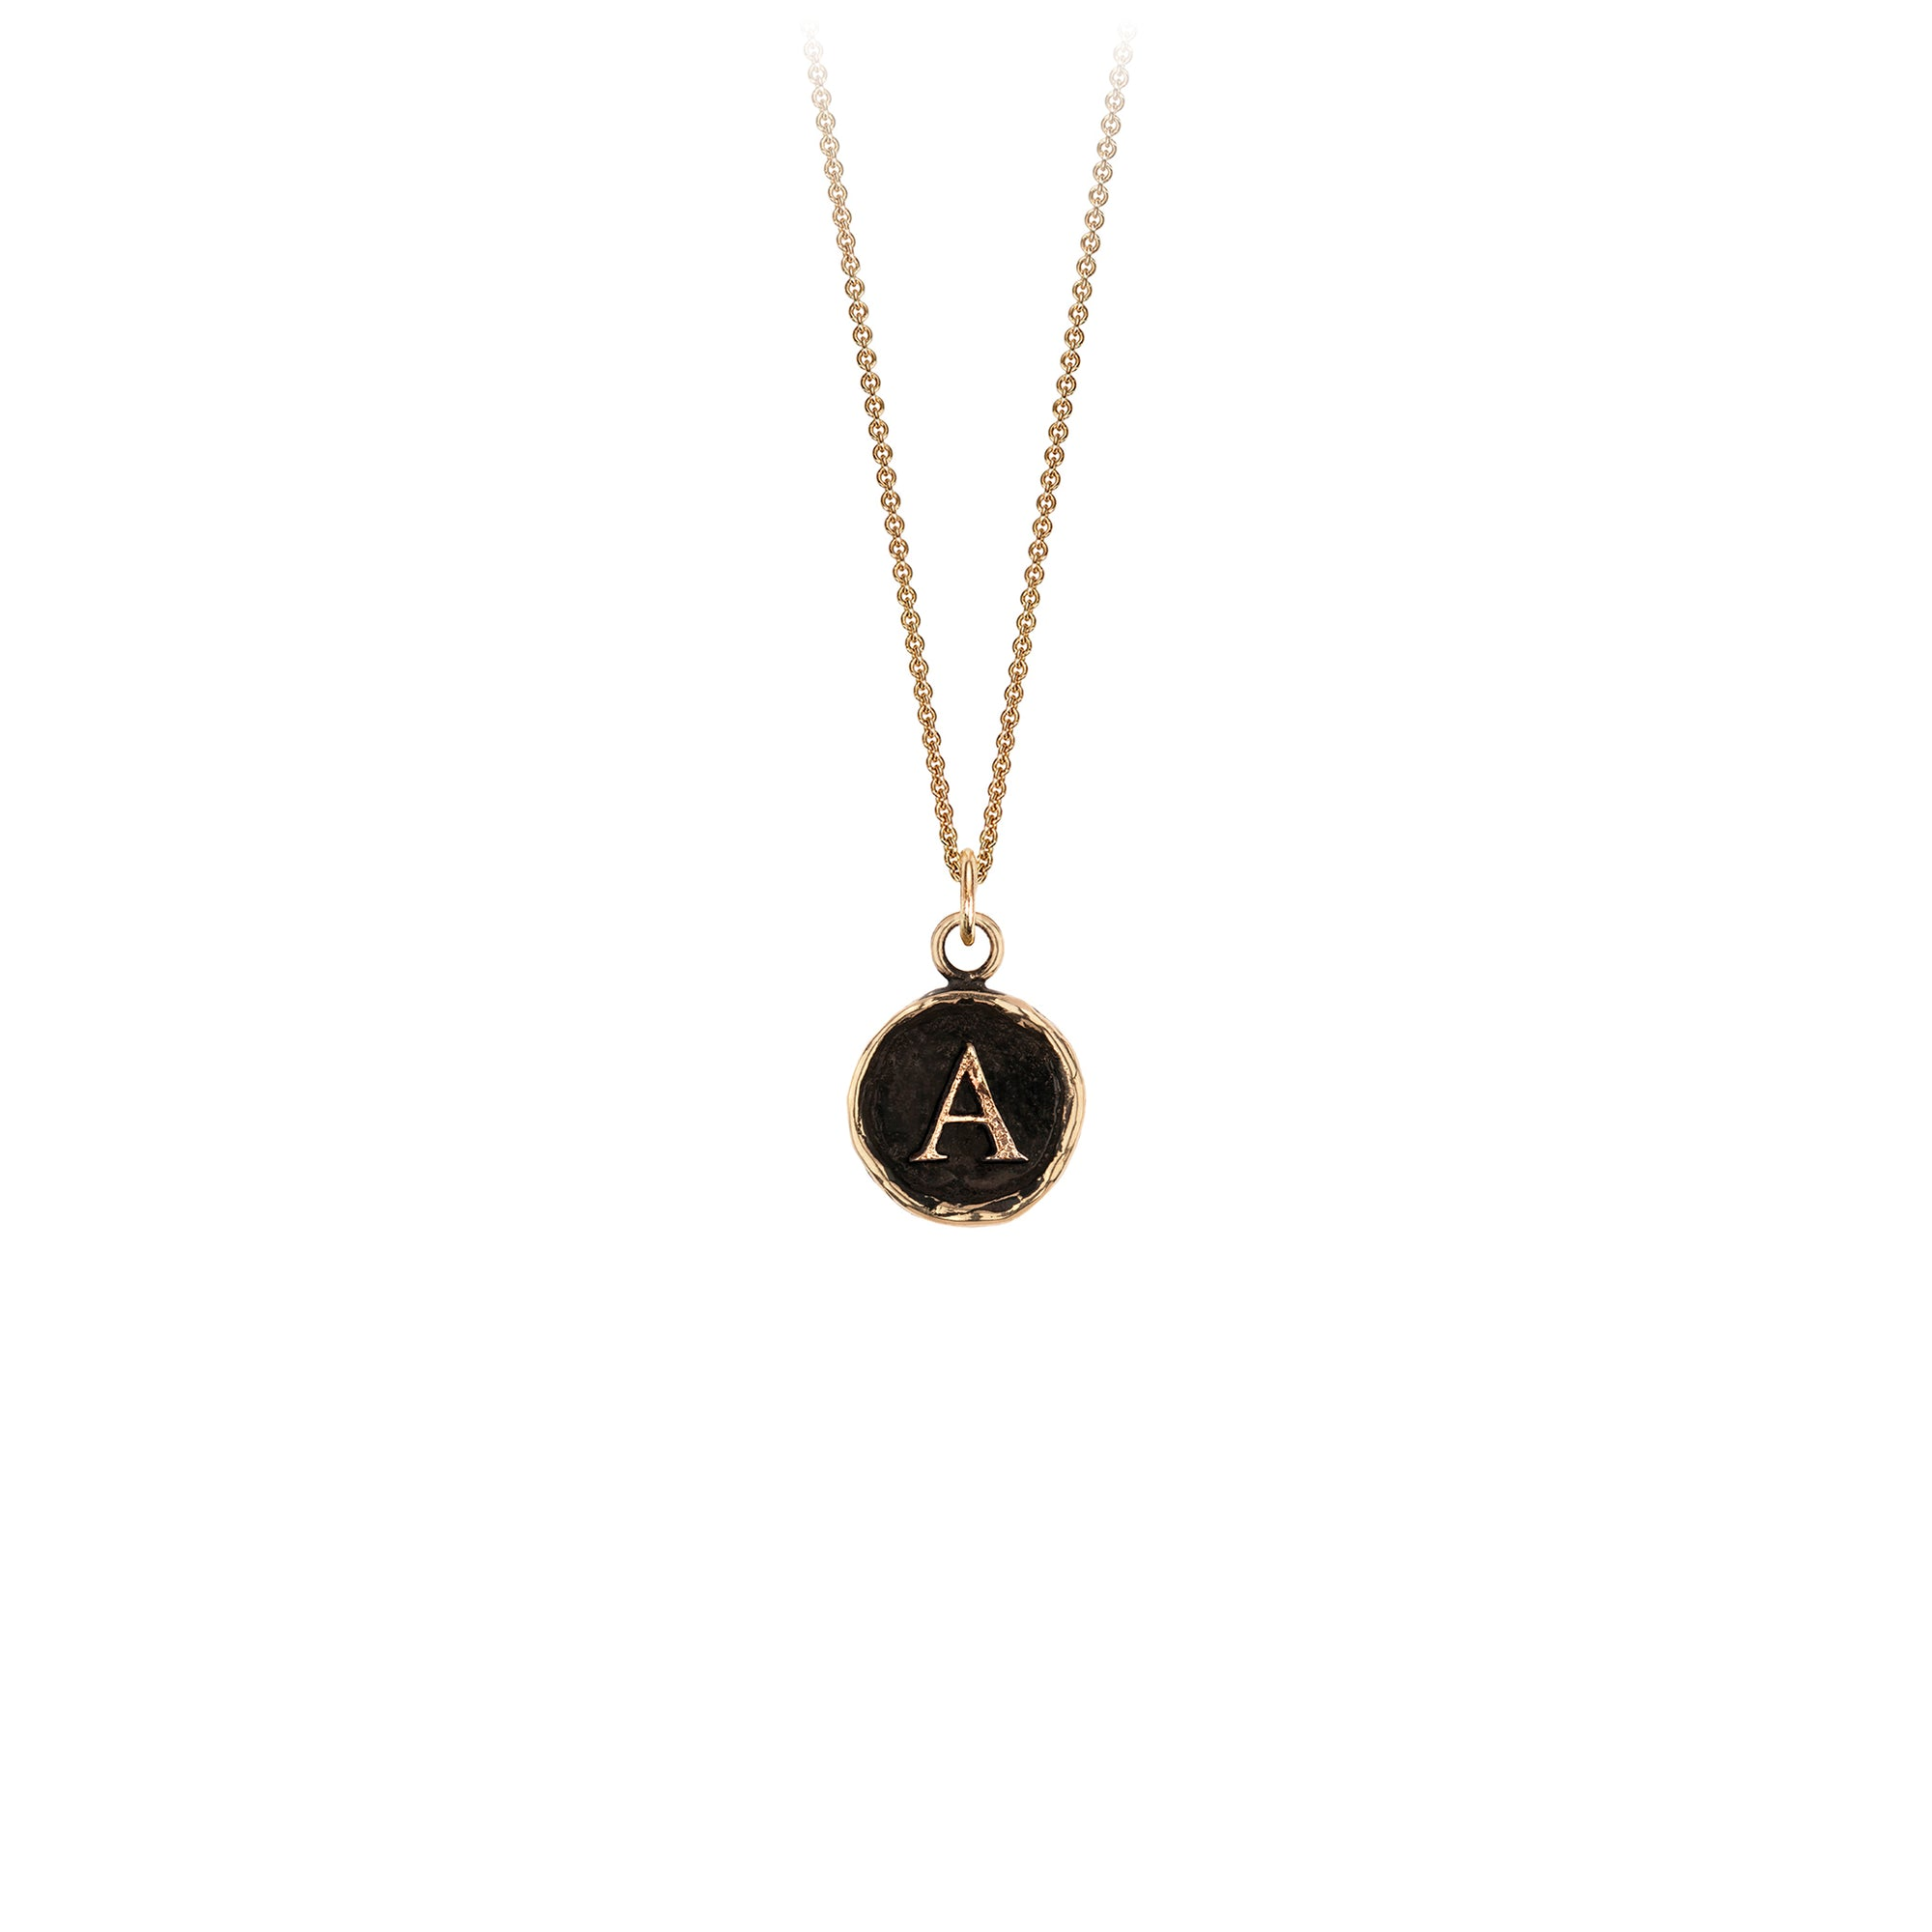 Pyrrha 14K Gold Initial A Talisman Necklace